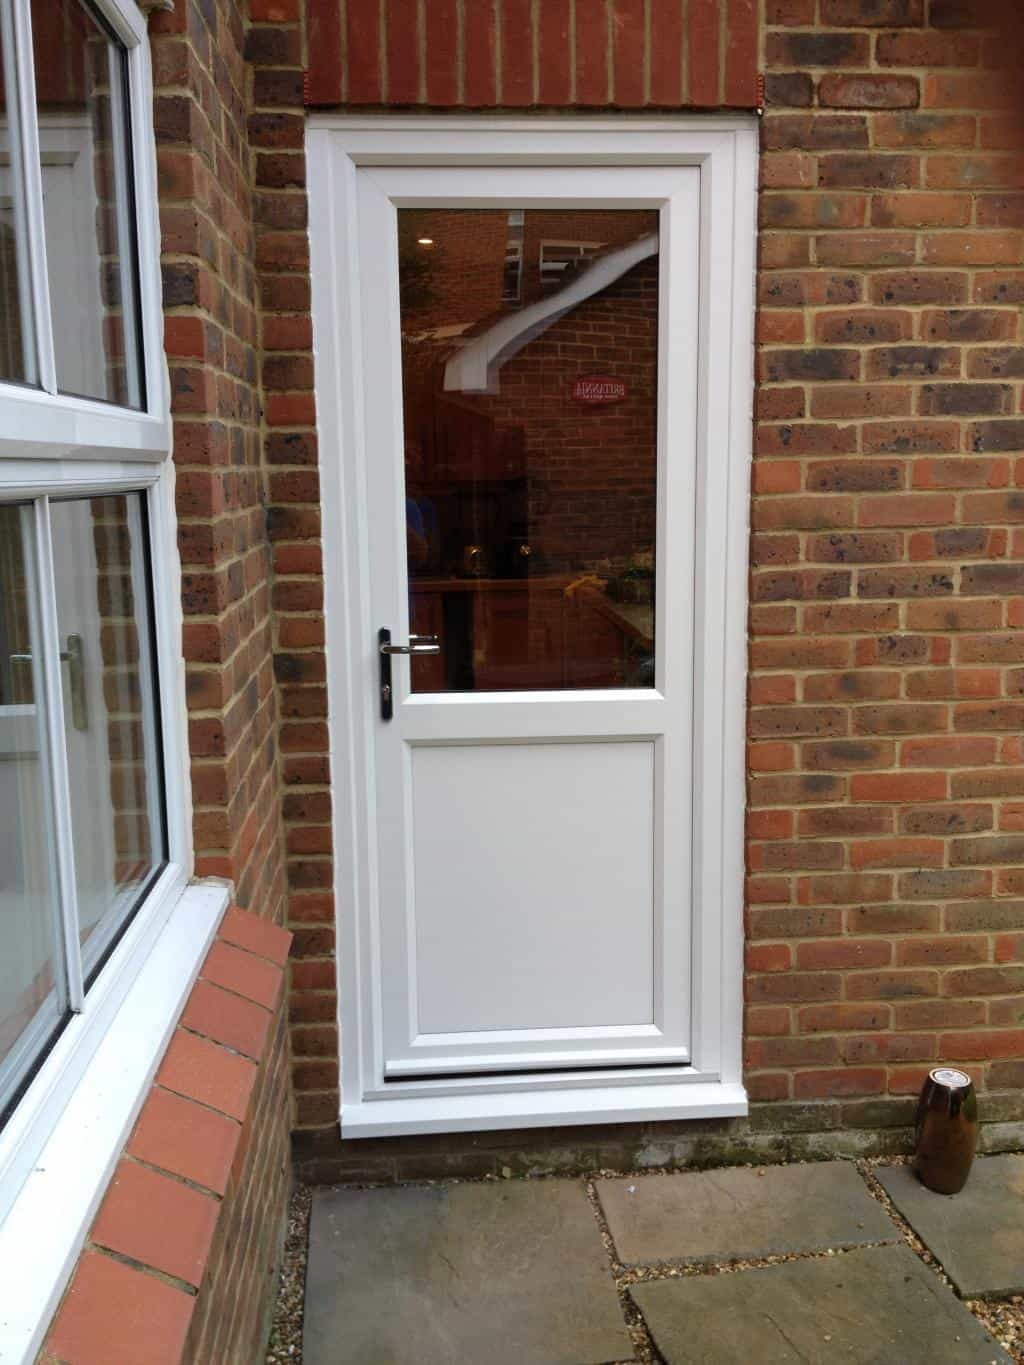 Double glazing reigate windows reigate upvc back door for Double glazed window glass